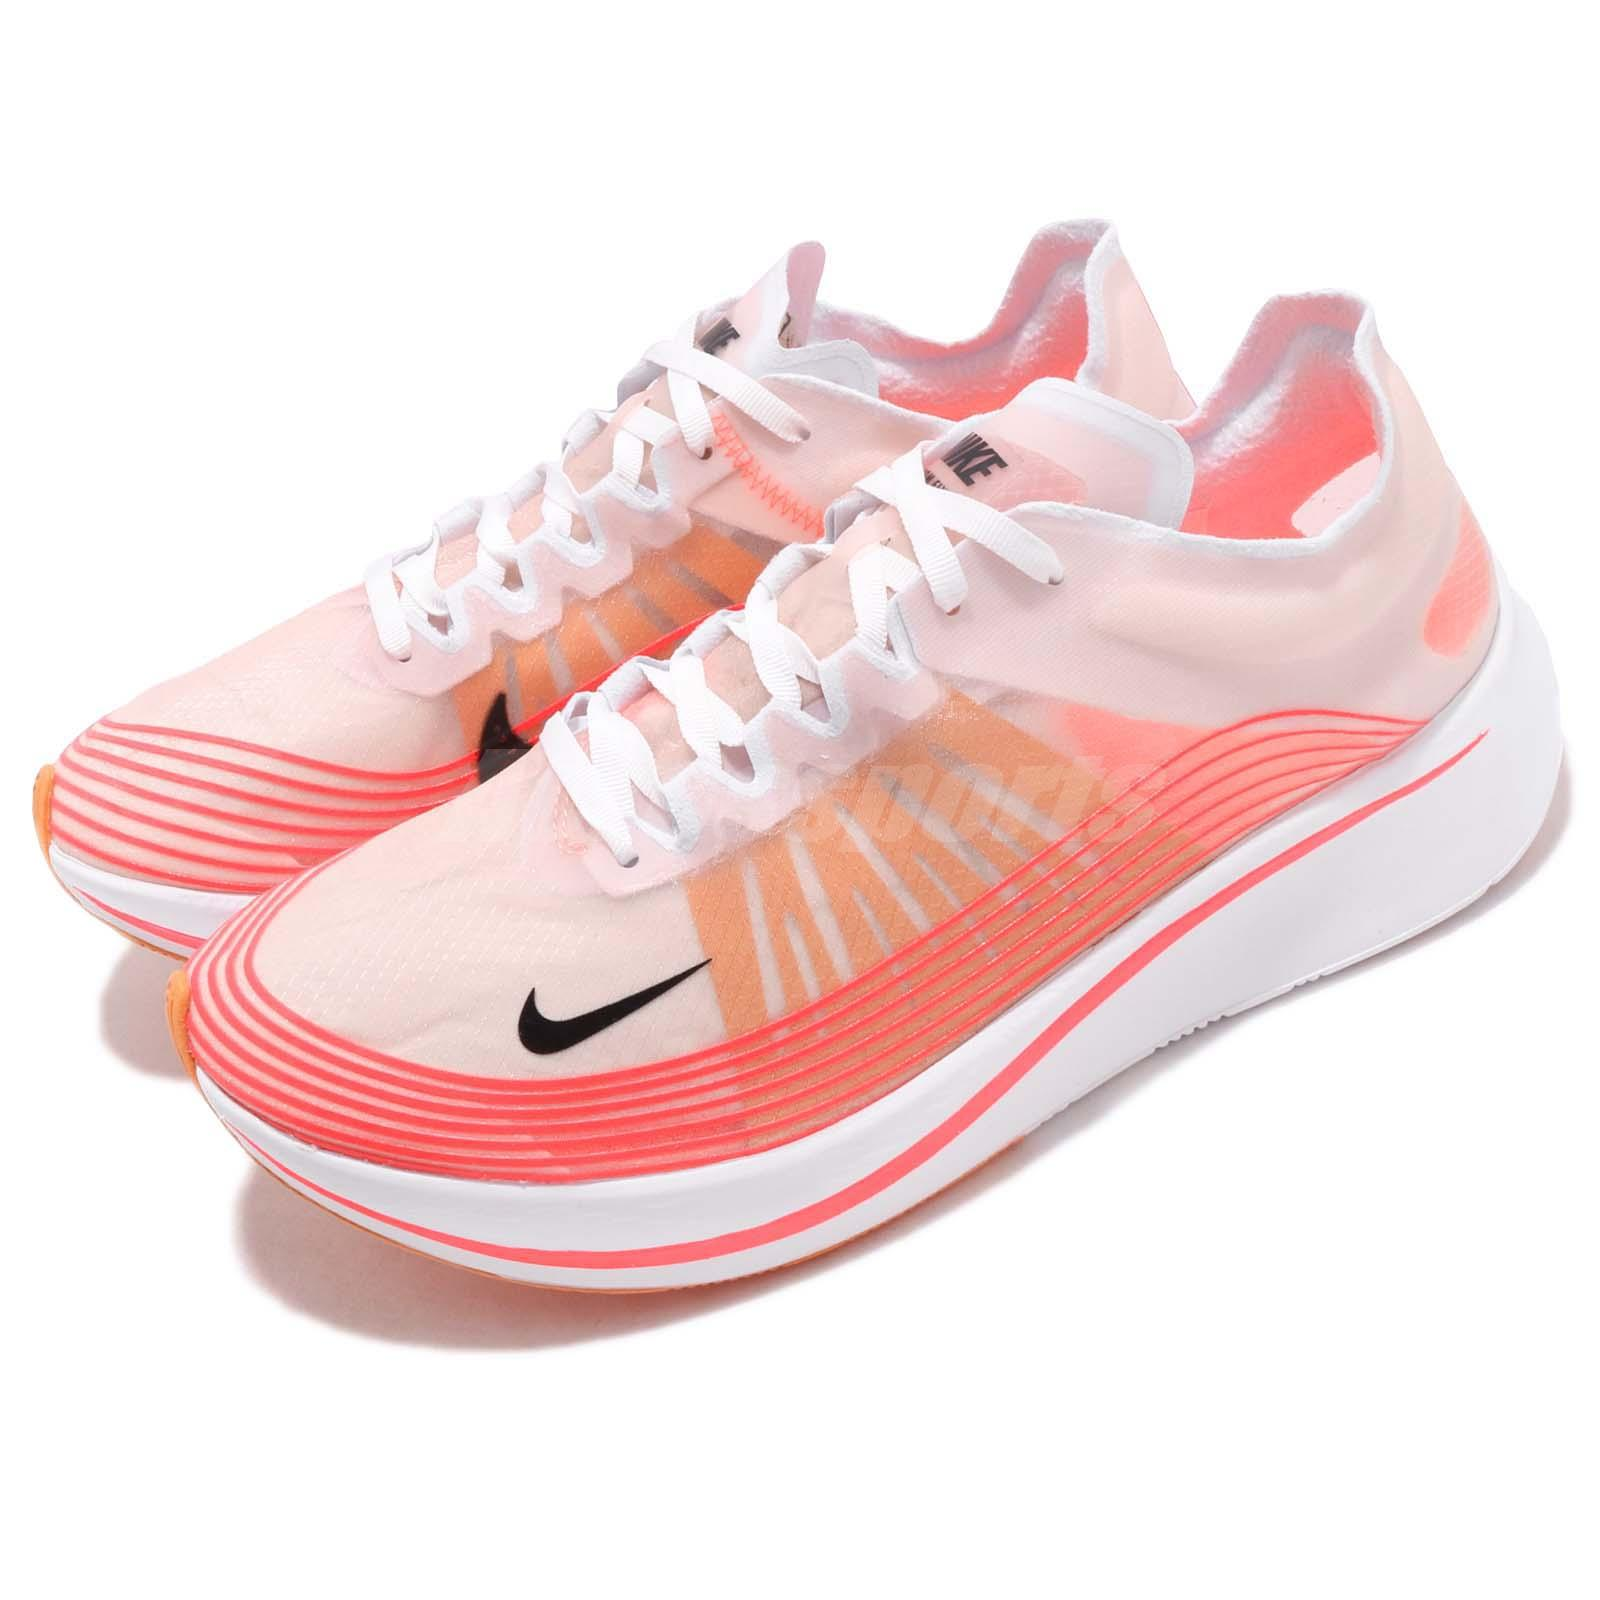 42f755e51e921 Details about Nike Zoom Fly SP Varsity Red Black White Men Running Shoes  Sneakers AJ9282-600